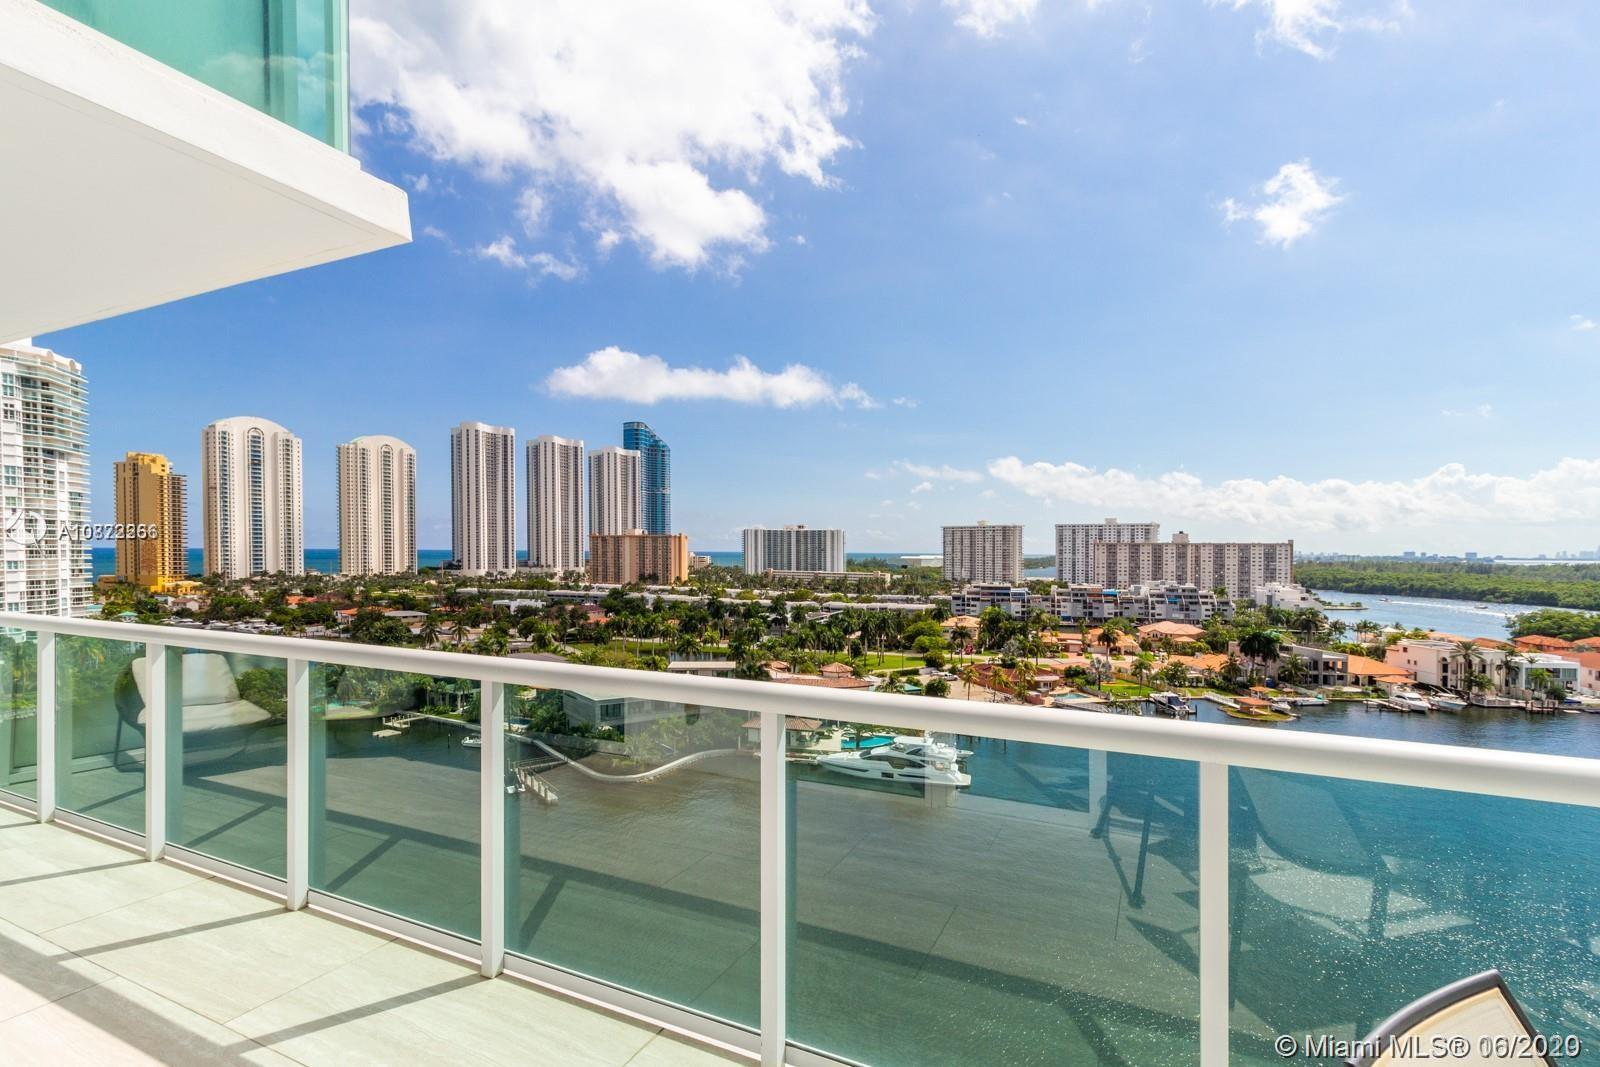 AMAZING NEW OPPORTUNITY AT 400 SUNNY ISLES! Very saw after split floor plan,  with large balcony exposing stunning panoramic Intracoastal views with Sunny Isles Skyscrapers bordering the sky on the left and Oleta National Park on the right, gorgeous to relax and enjoy.This luxury condo 3 Bedrooms/3 Baths, fully furnished by Crate & Barrel, features a Master suite with a very large walk-in closet. Living room features lots of natural light. Full Service building, 24hrs front desk, gym, Tennis court, Pool, Marina, Valet. Walking distance to Sunny Isles Beach, near Aventura Mall, Bal Harbour Mall, Great schools, and world-class restaurants. Featuring resort style pool deck with full service private Marina and boat with wet and dry slips, to all residents. Vacant, easy to show!